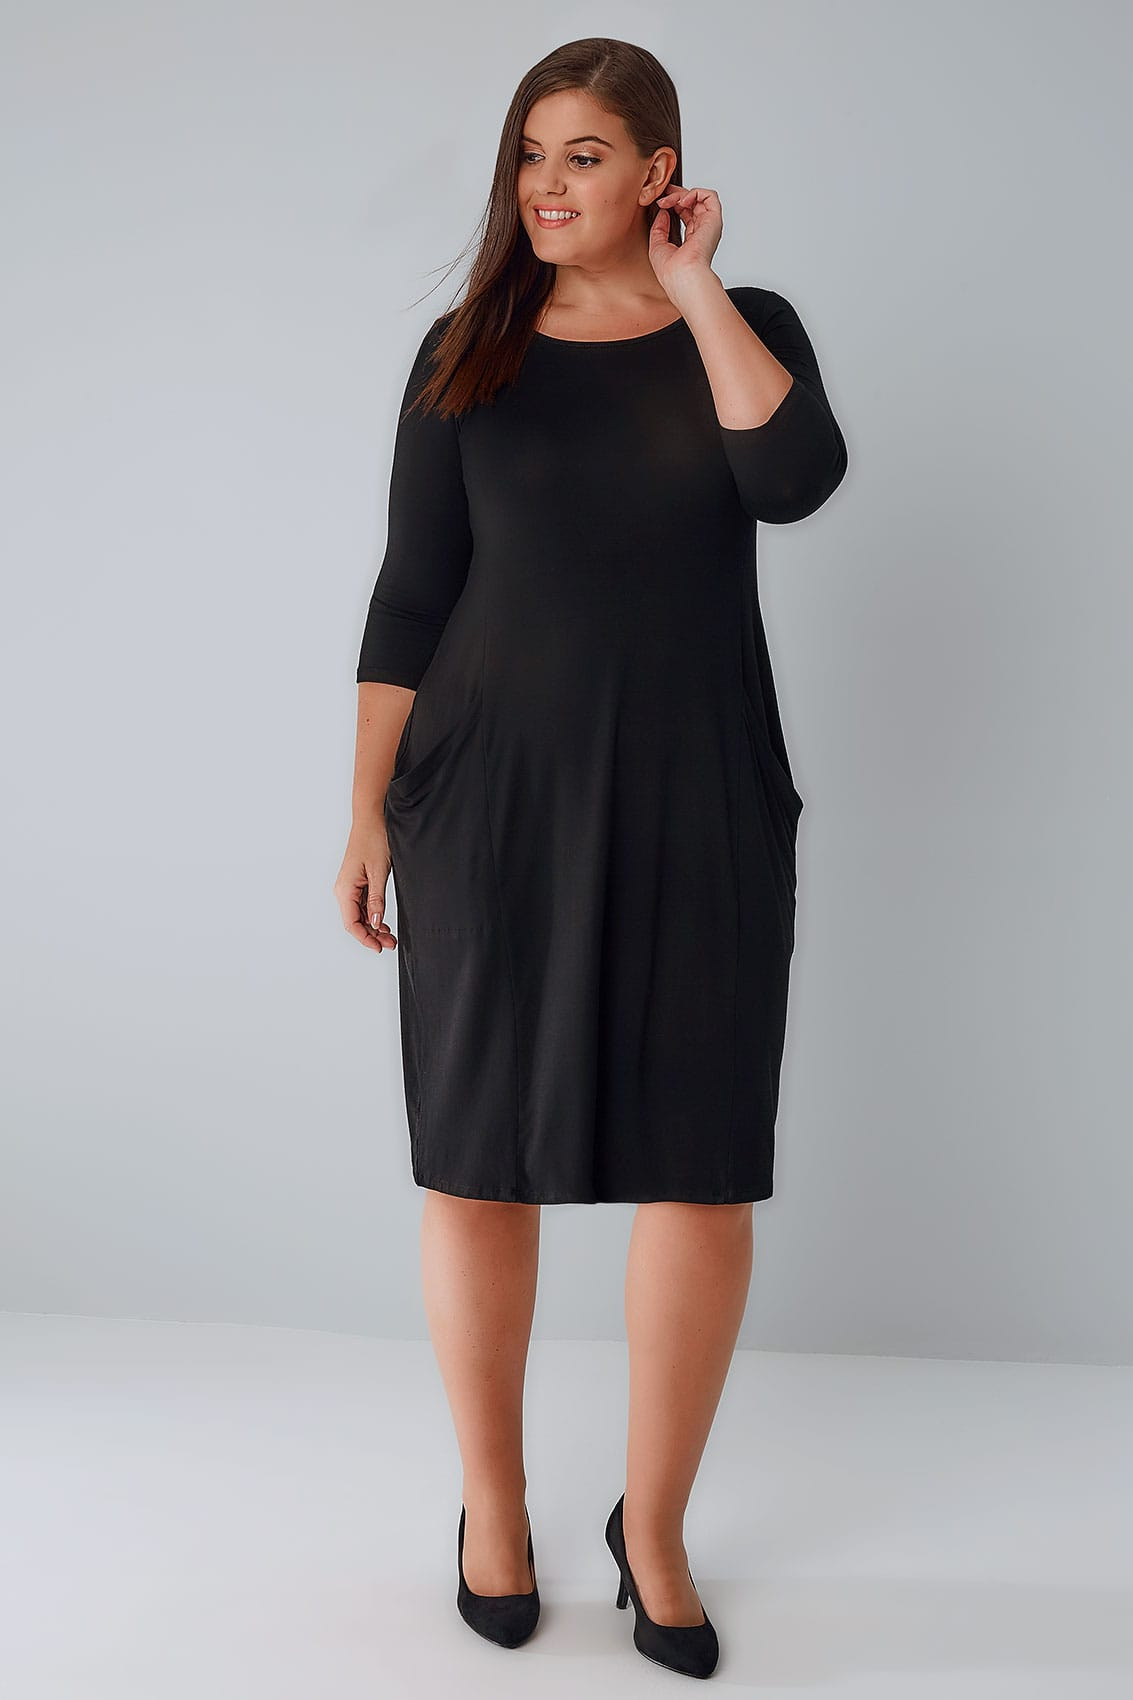 This long wrap dress ties at the side of the waist and features a V-neck and long sleeves. modal jersey 92% modal/8% spandex dry clean only made in the USA VIEW FULL DETAILS. Isa Dress - Slate $ QUICK VIEW Isa Dress - Slate. $ Size Your next Long Black Dress is here.